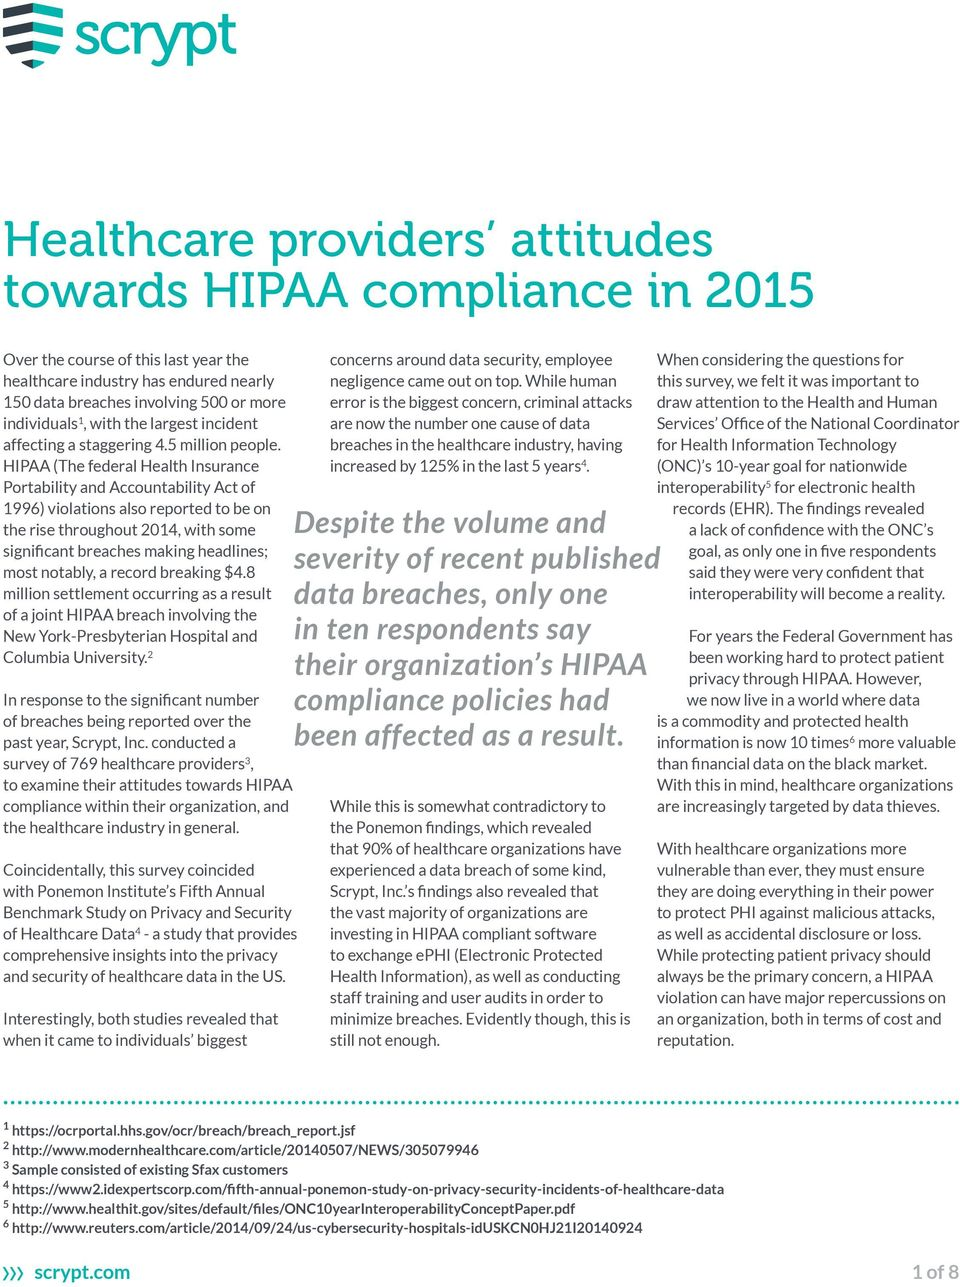 HIPAA (The federal Health Insurance Portability and Accountability Act of 1996) violations also reported to be on the rise throughout 2014, with some significant breaches making headlines; most